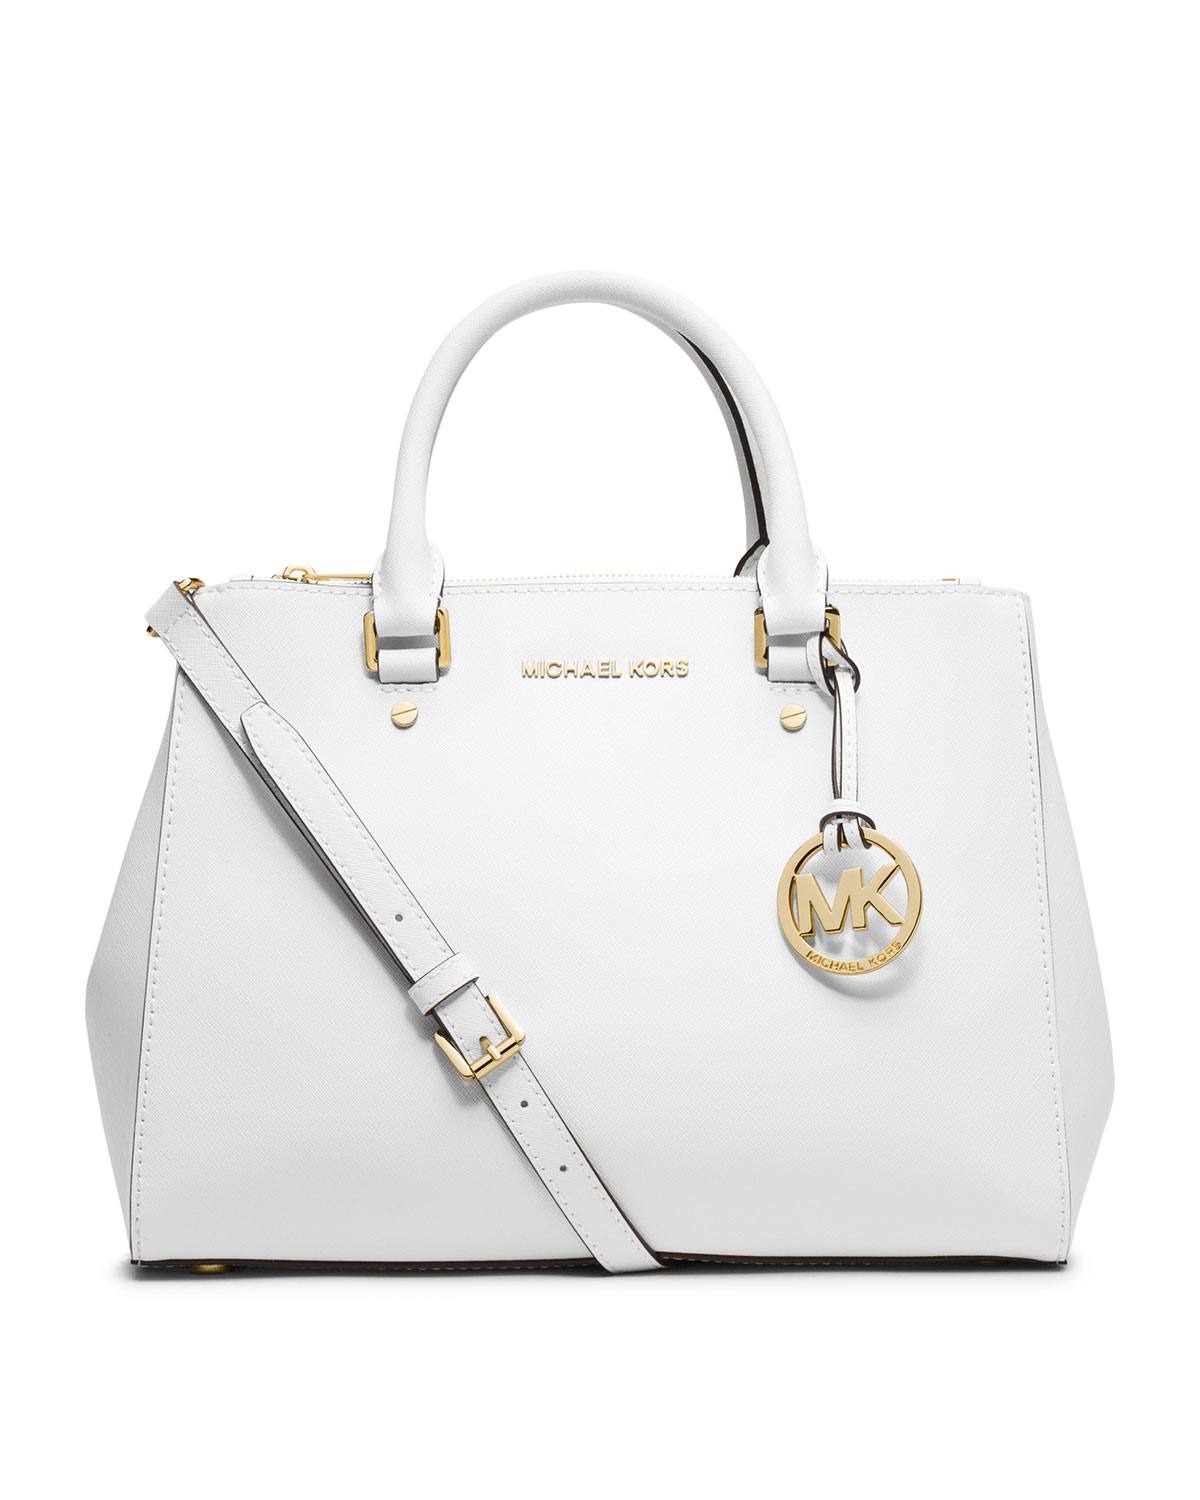 Lyst Michael Kors Sutton Saffiano Leather Tote In White